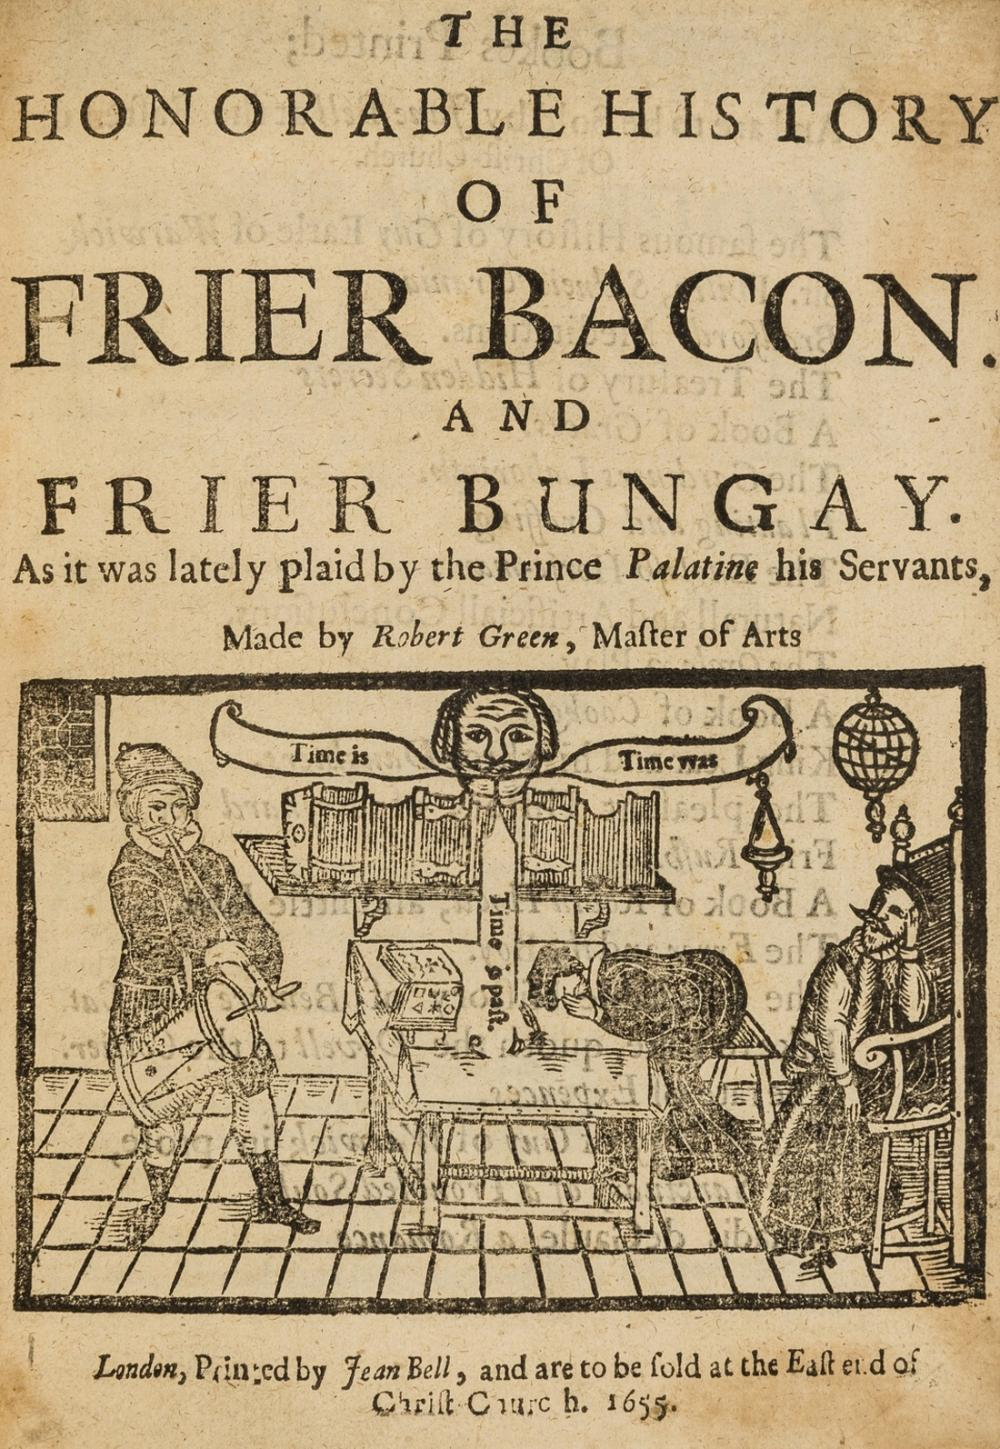 Greene (Robert) The Honorable History of Frier Bacon and Frier Bungay, third edition, later crushed red morocco, gilt, by Jean Bell, 1655.